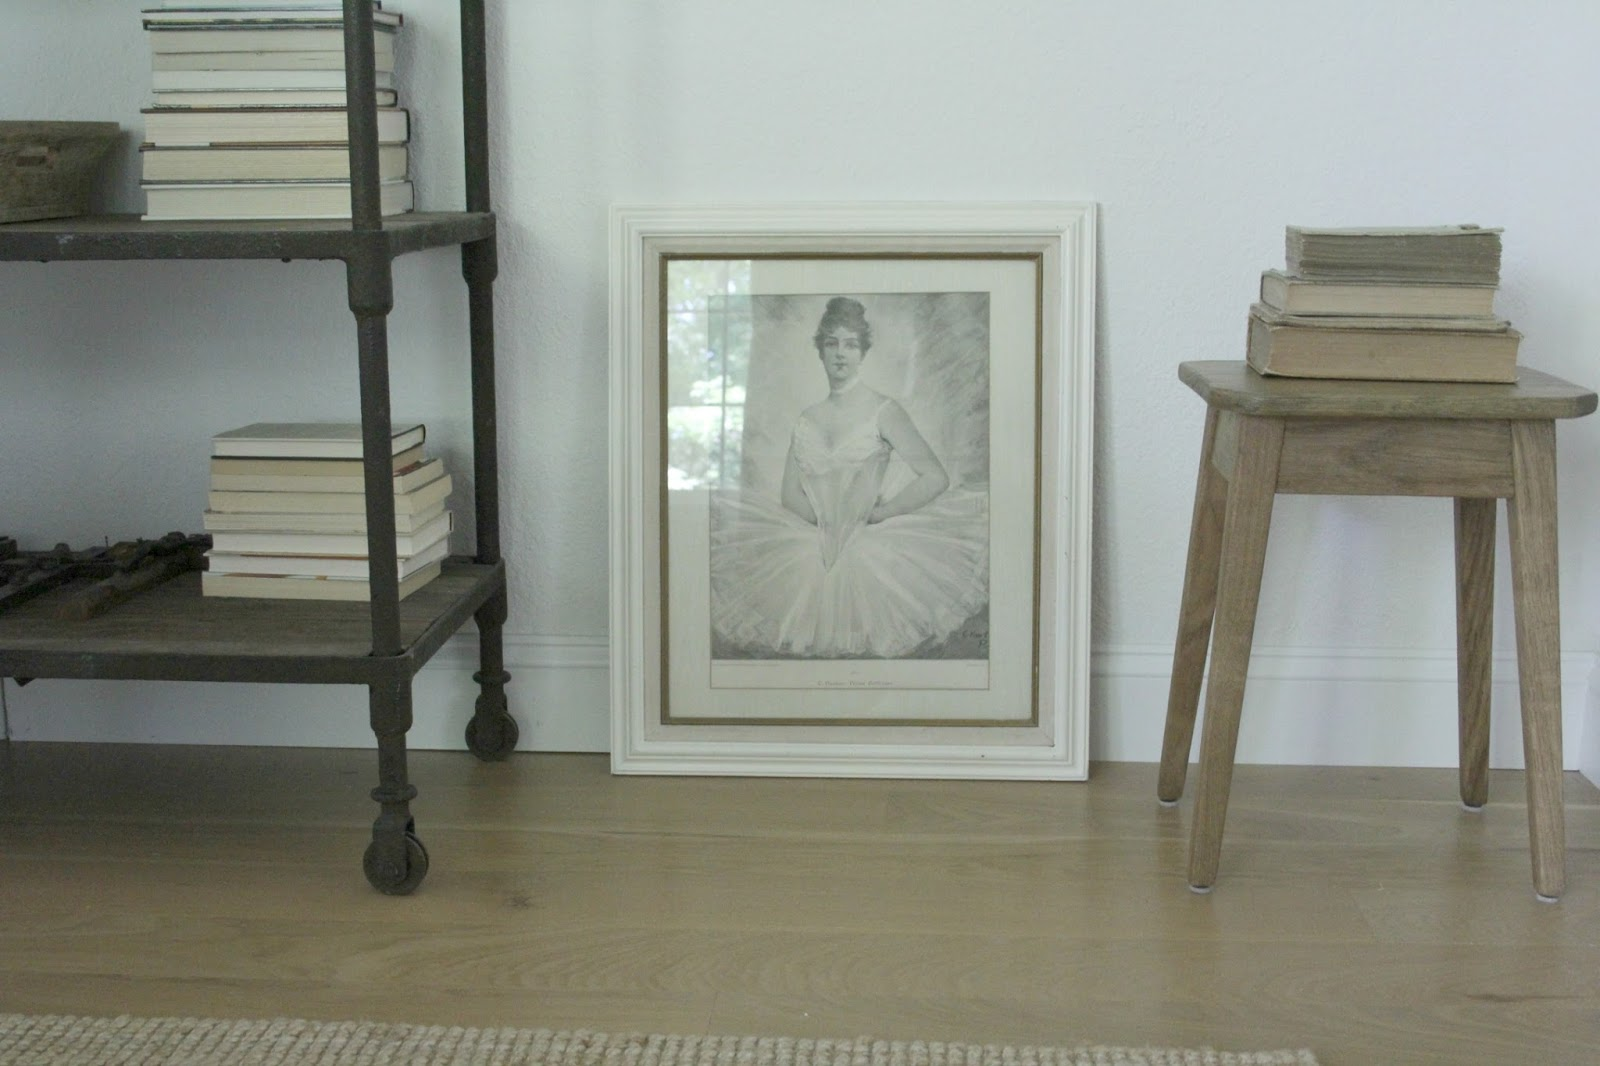 Ballerina etching and rustic shelves in dining room with white oak floor. Hello Lovely Studio. Time to Paint Your Walls? Come discover a Refresher to Demystify the Process!